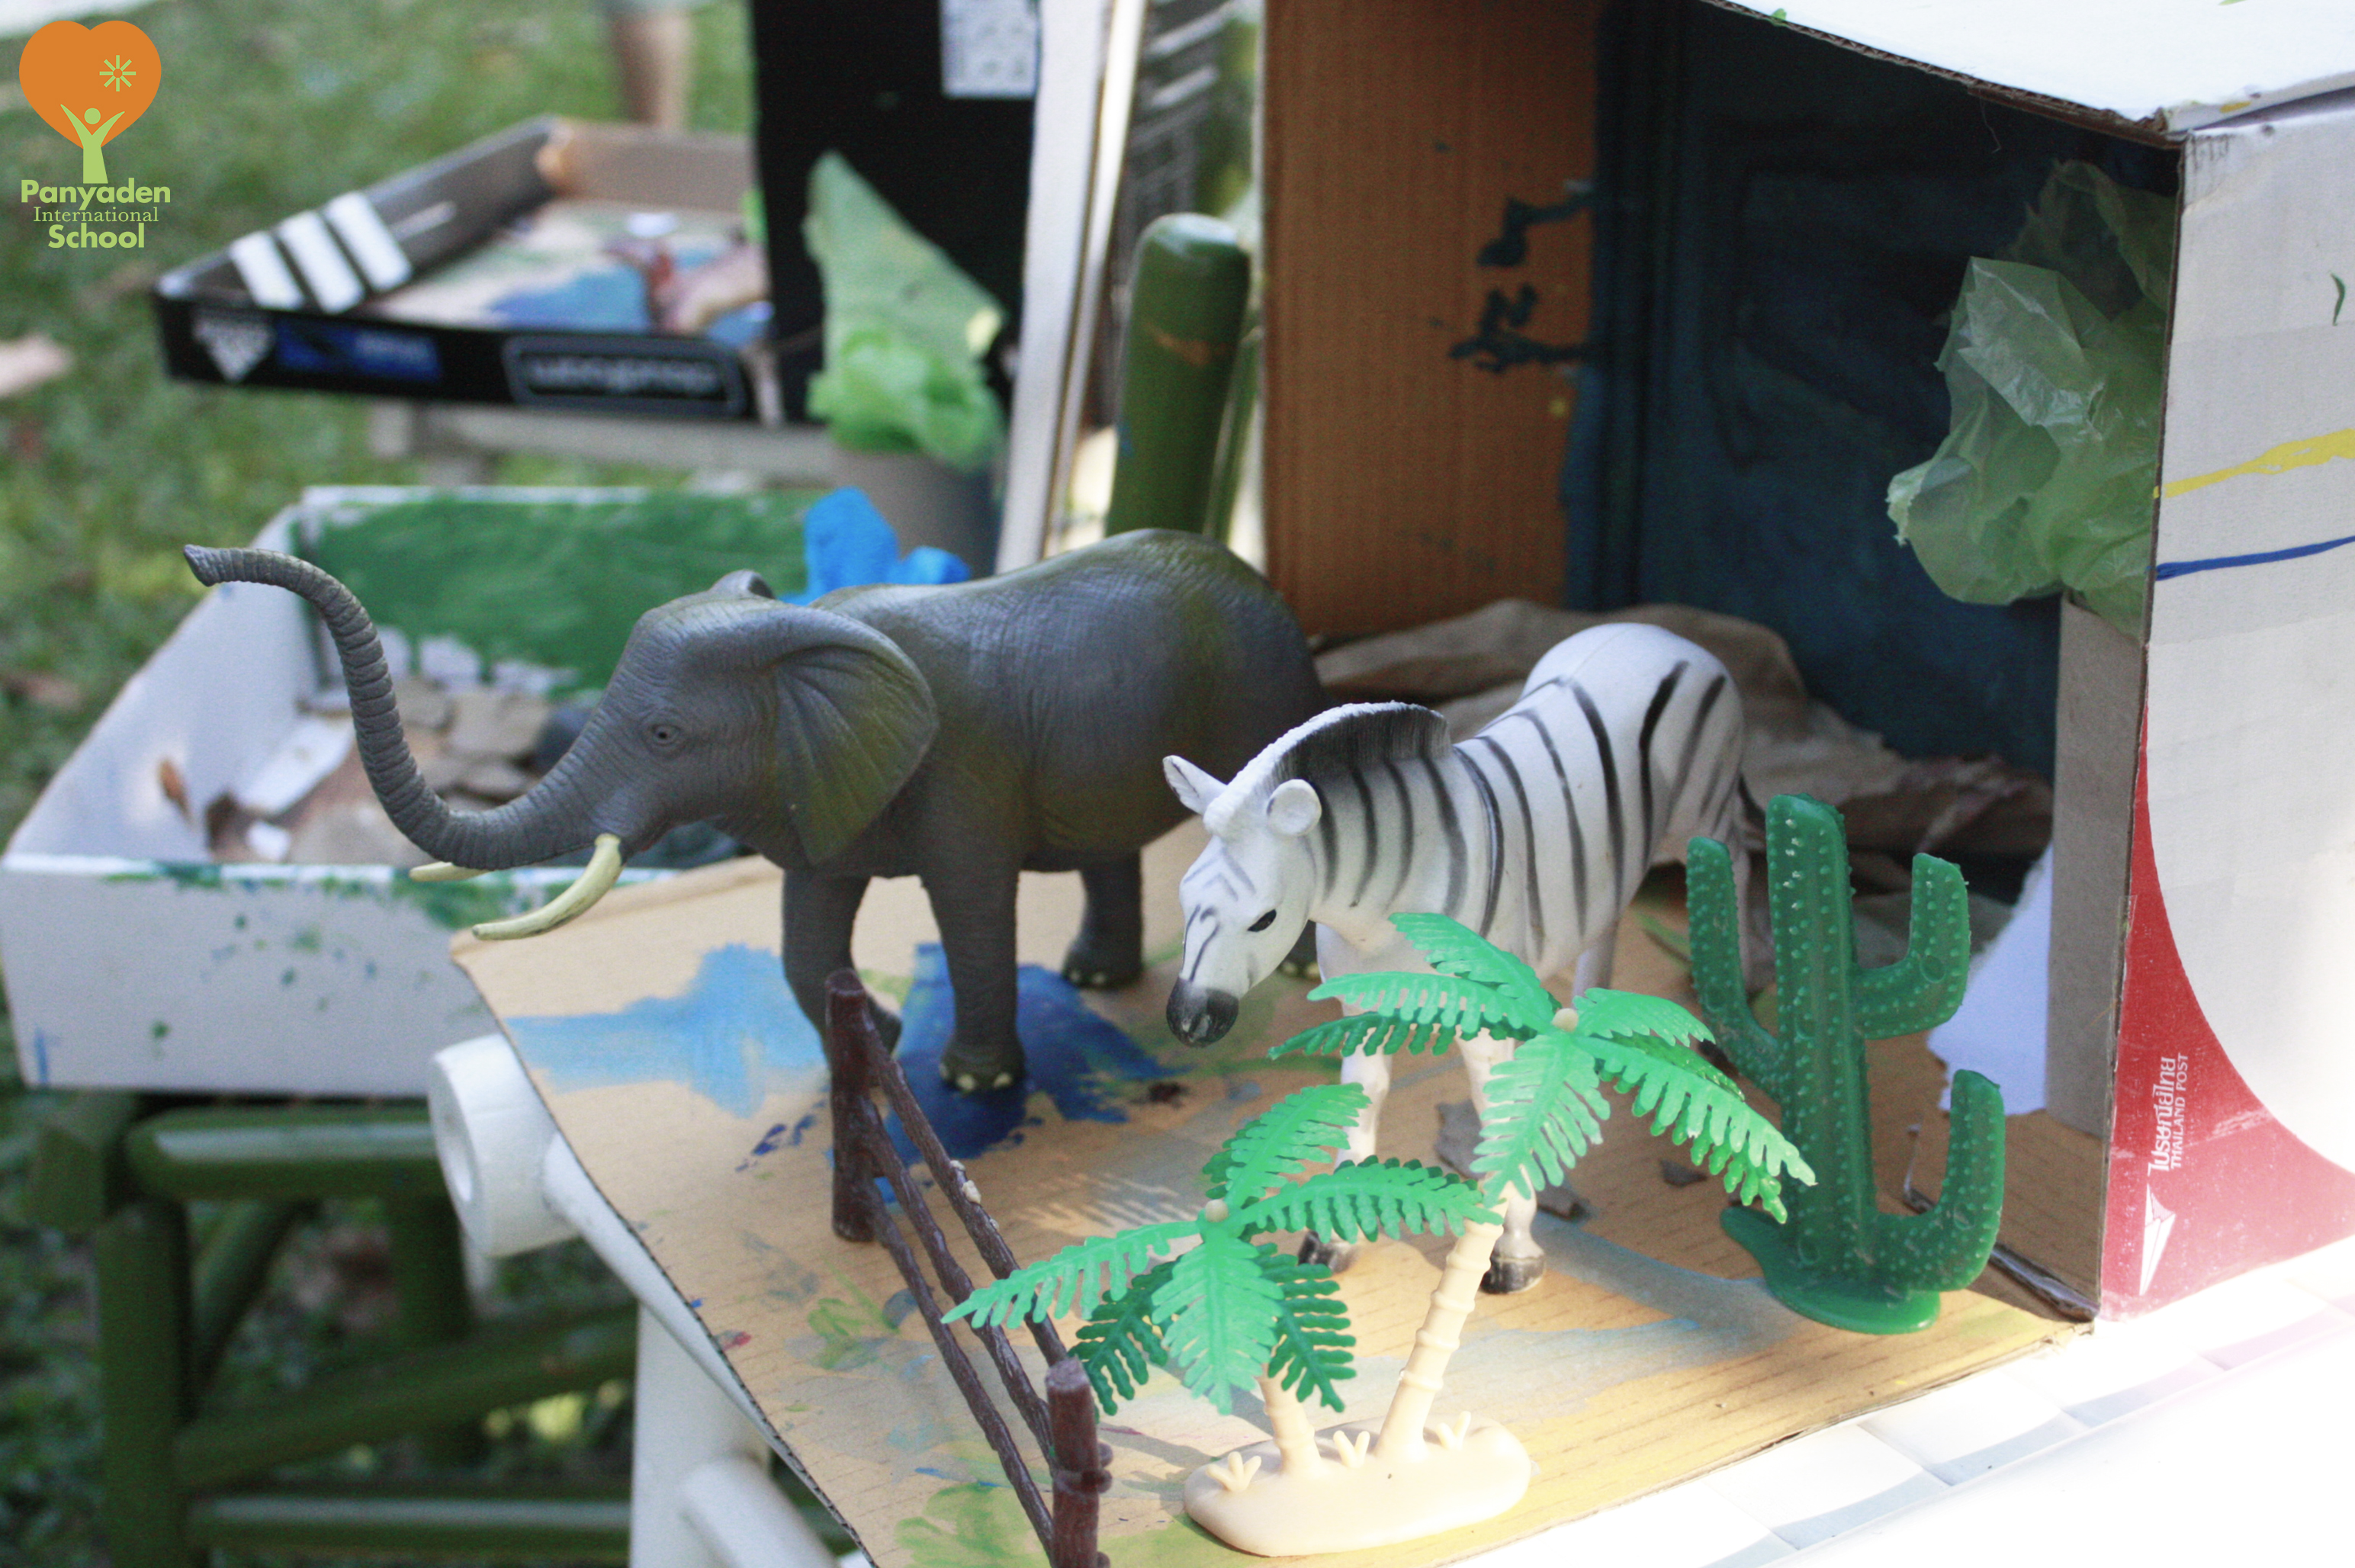 Diorama of African animals by Panyaden International School pre-school students